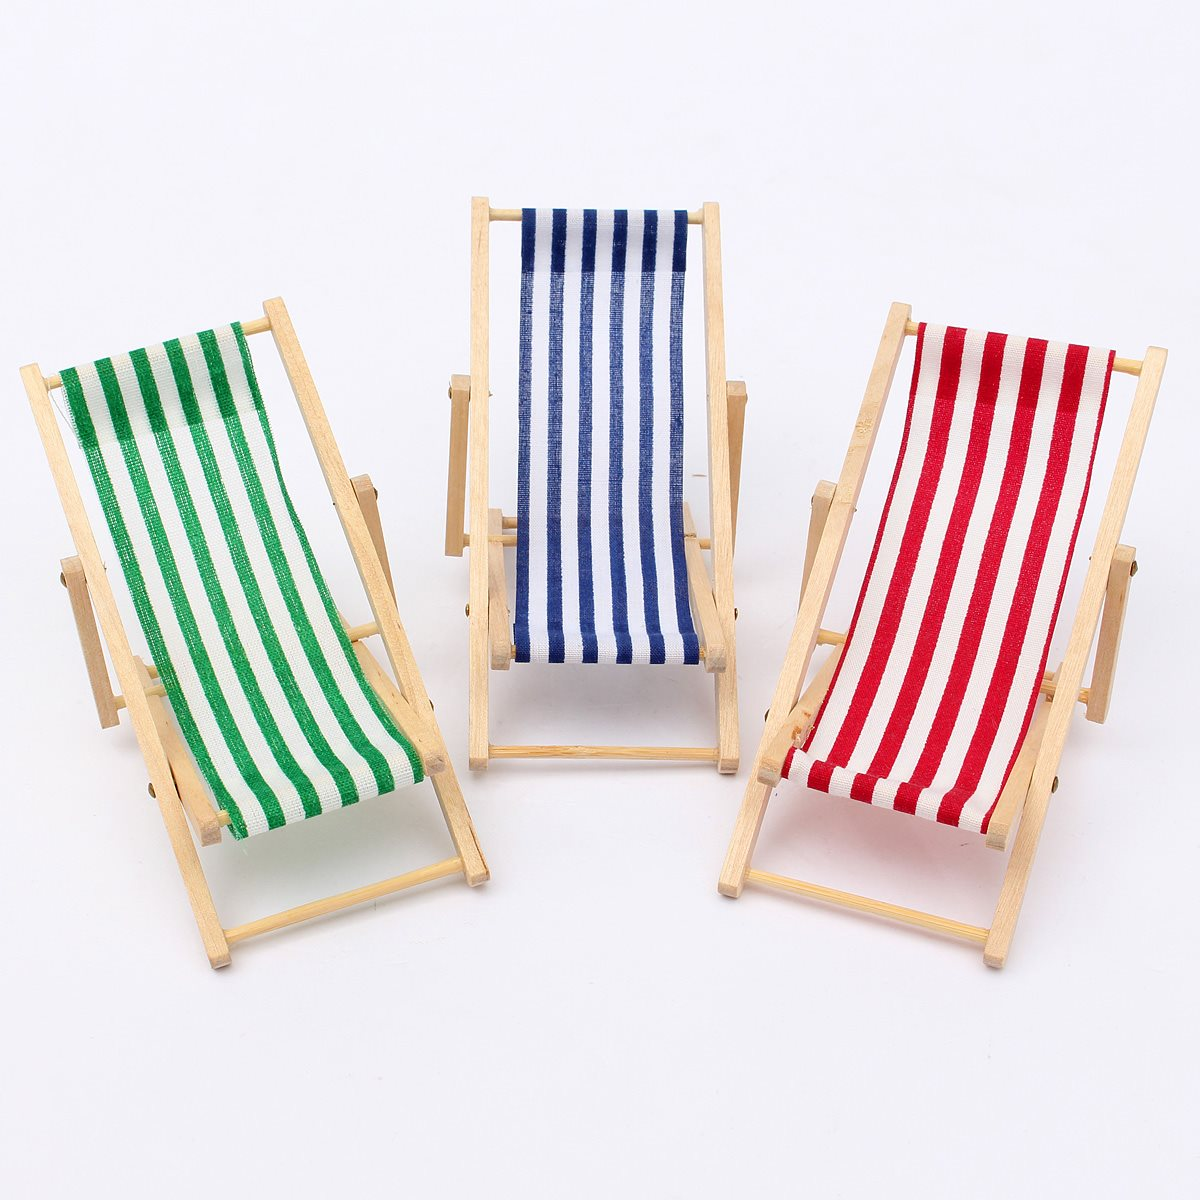 Beach lounge chair portable - 1 12 Scale Foldable Wooden Deckchair Lounge Beach Chair For Lovely Miniature For Barbie Dolls House Color In Green Pink Blue